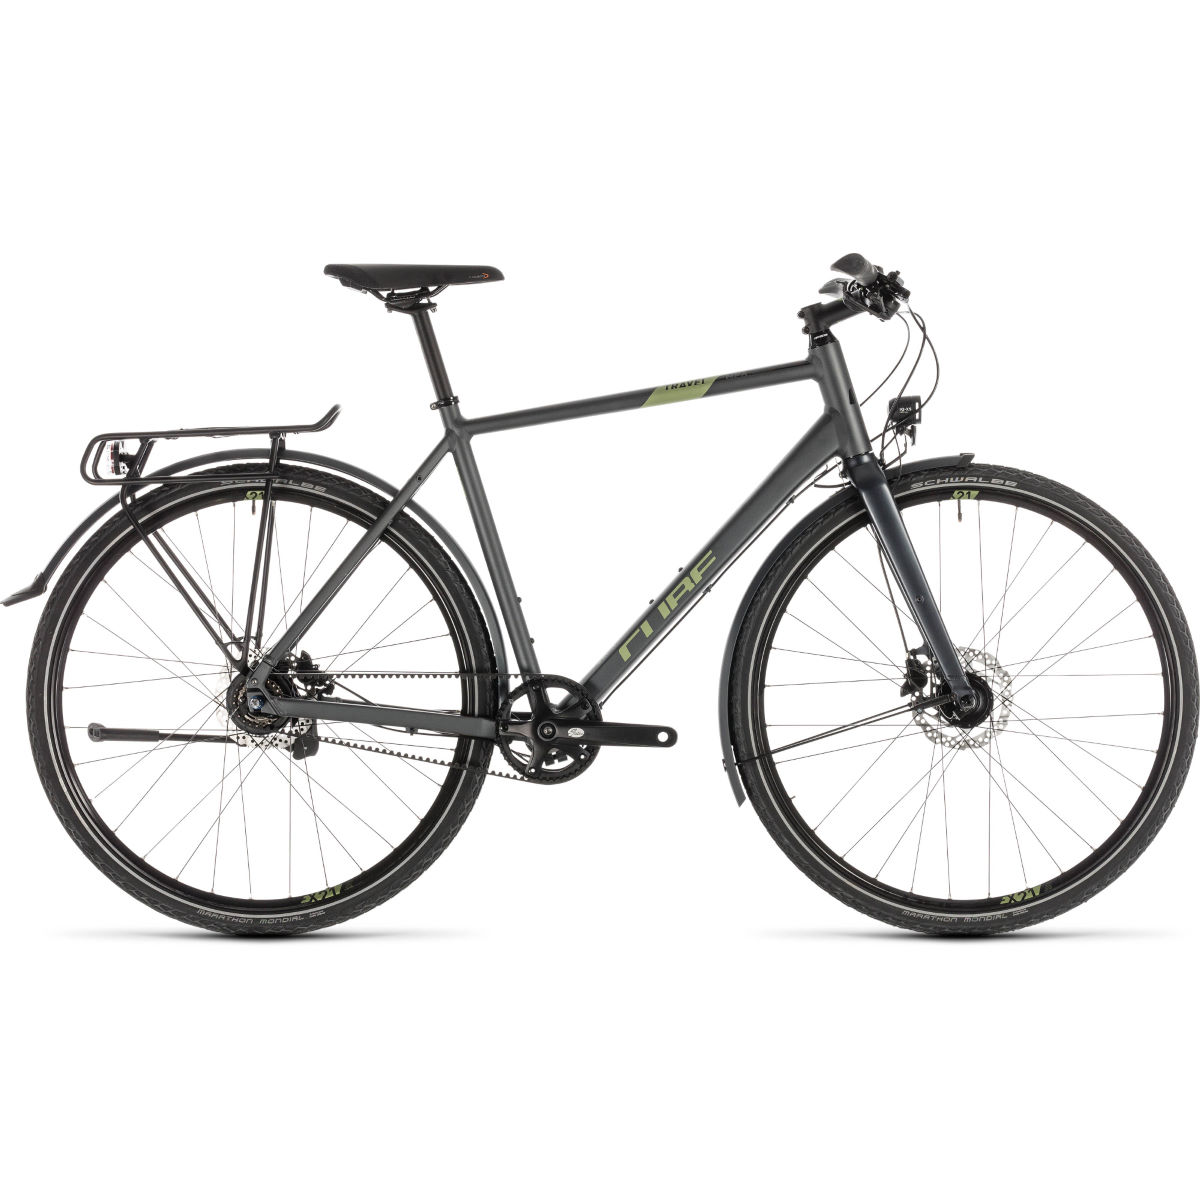 Best hybrid bikes 2019 | 11 of the best commuting and urban